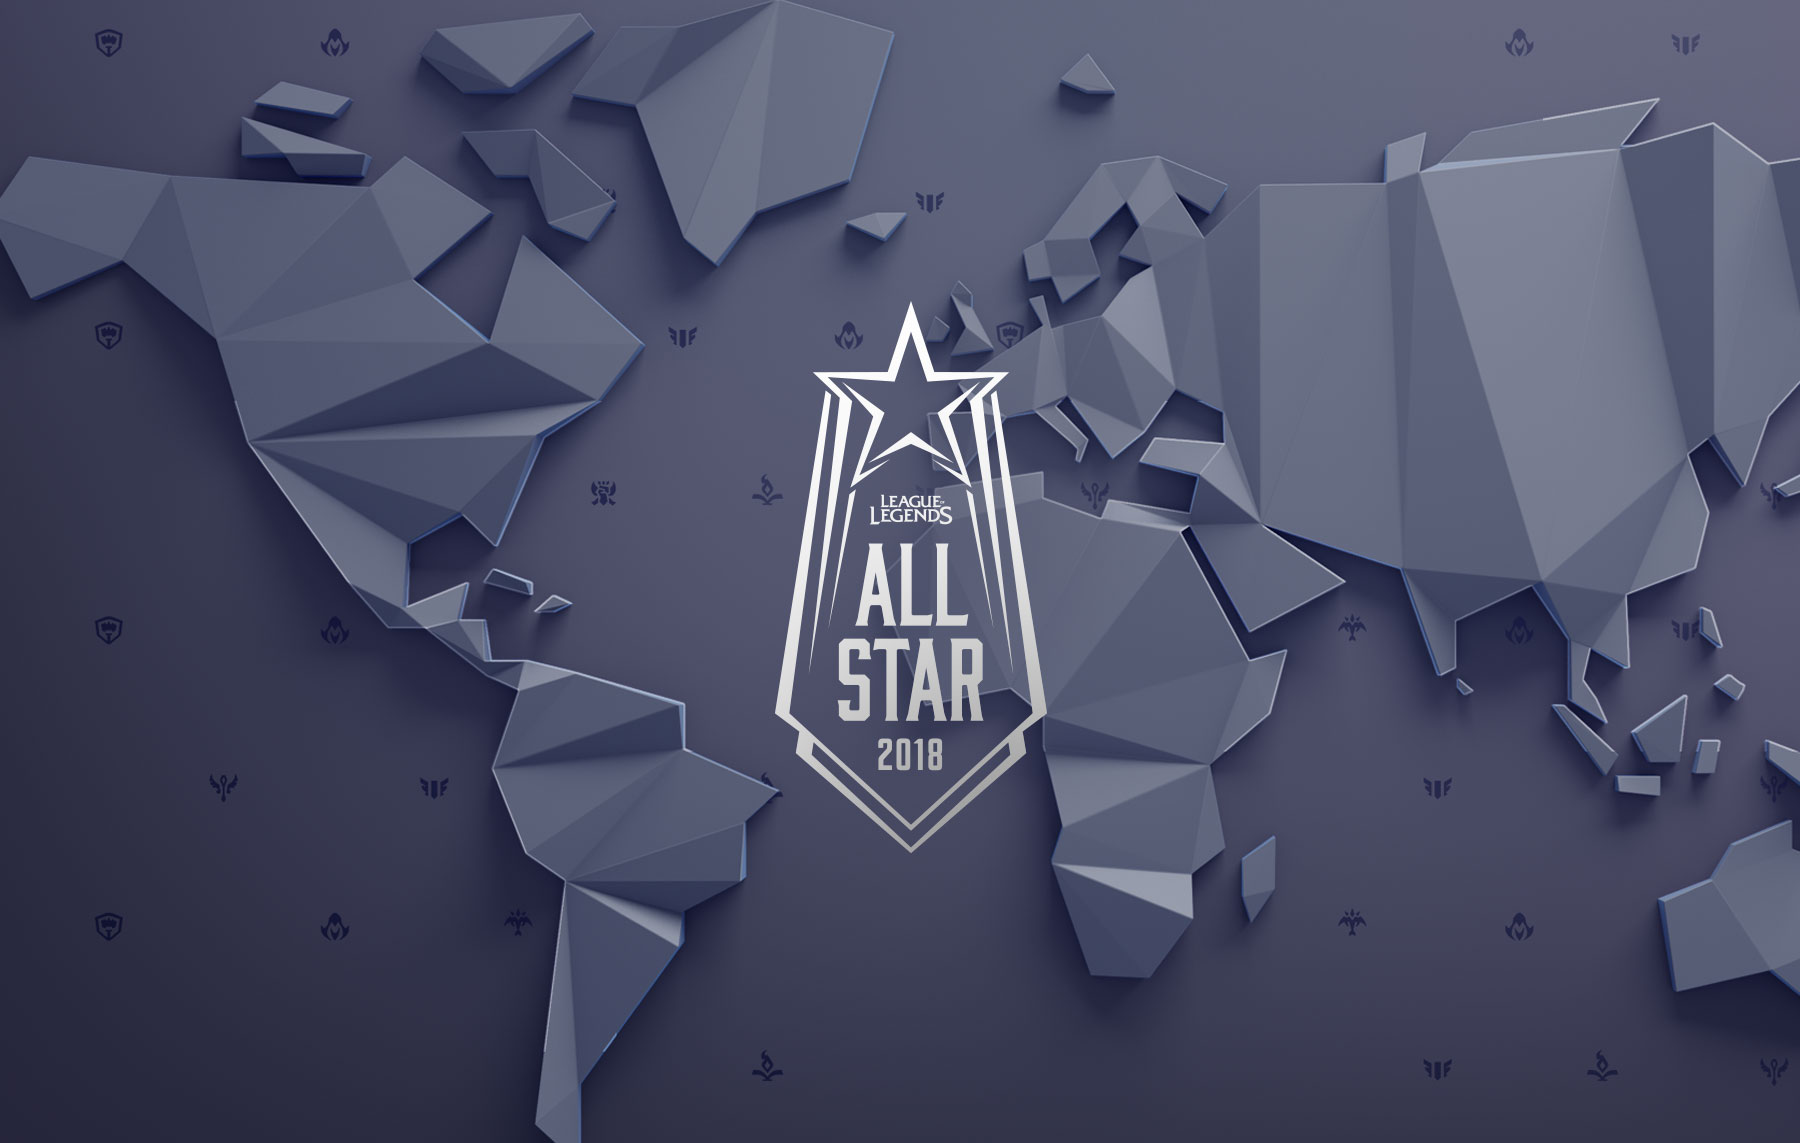 All Star 2018 | Riot Games